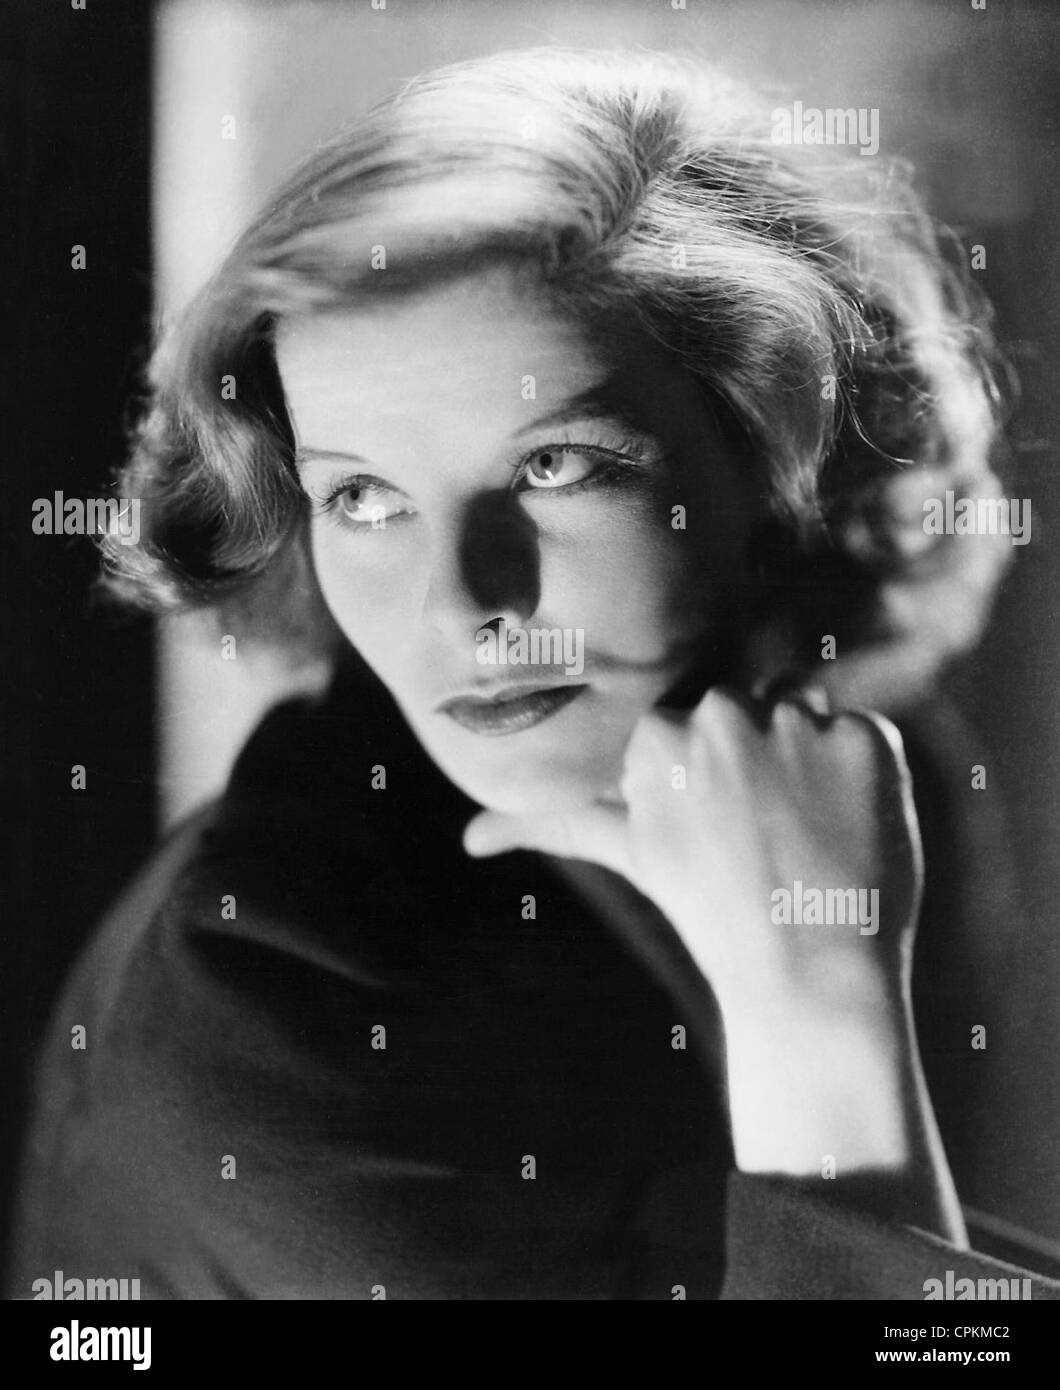 A black and white portrait of the film star Katharine Hepburn pictured in Los Angeles in 1938. - Stock Image